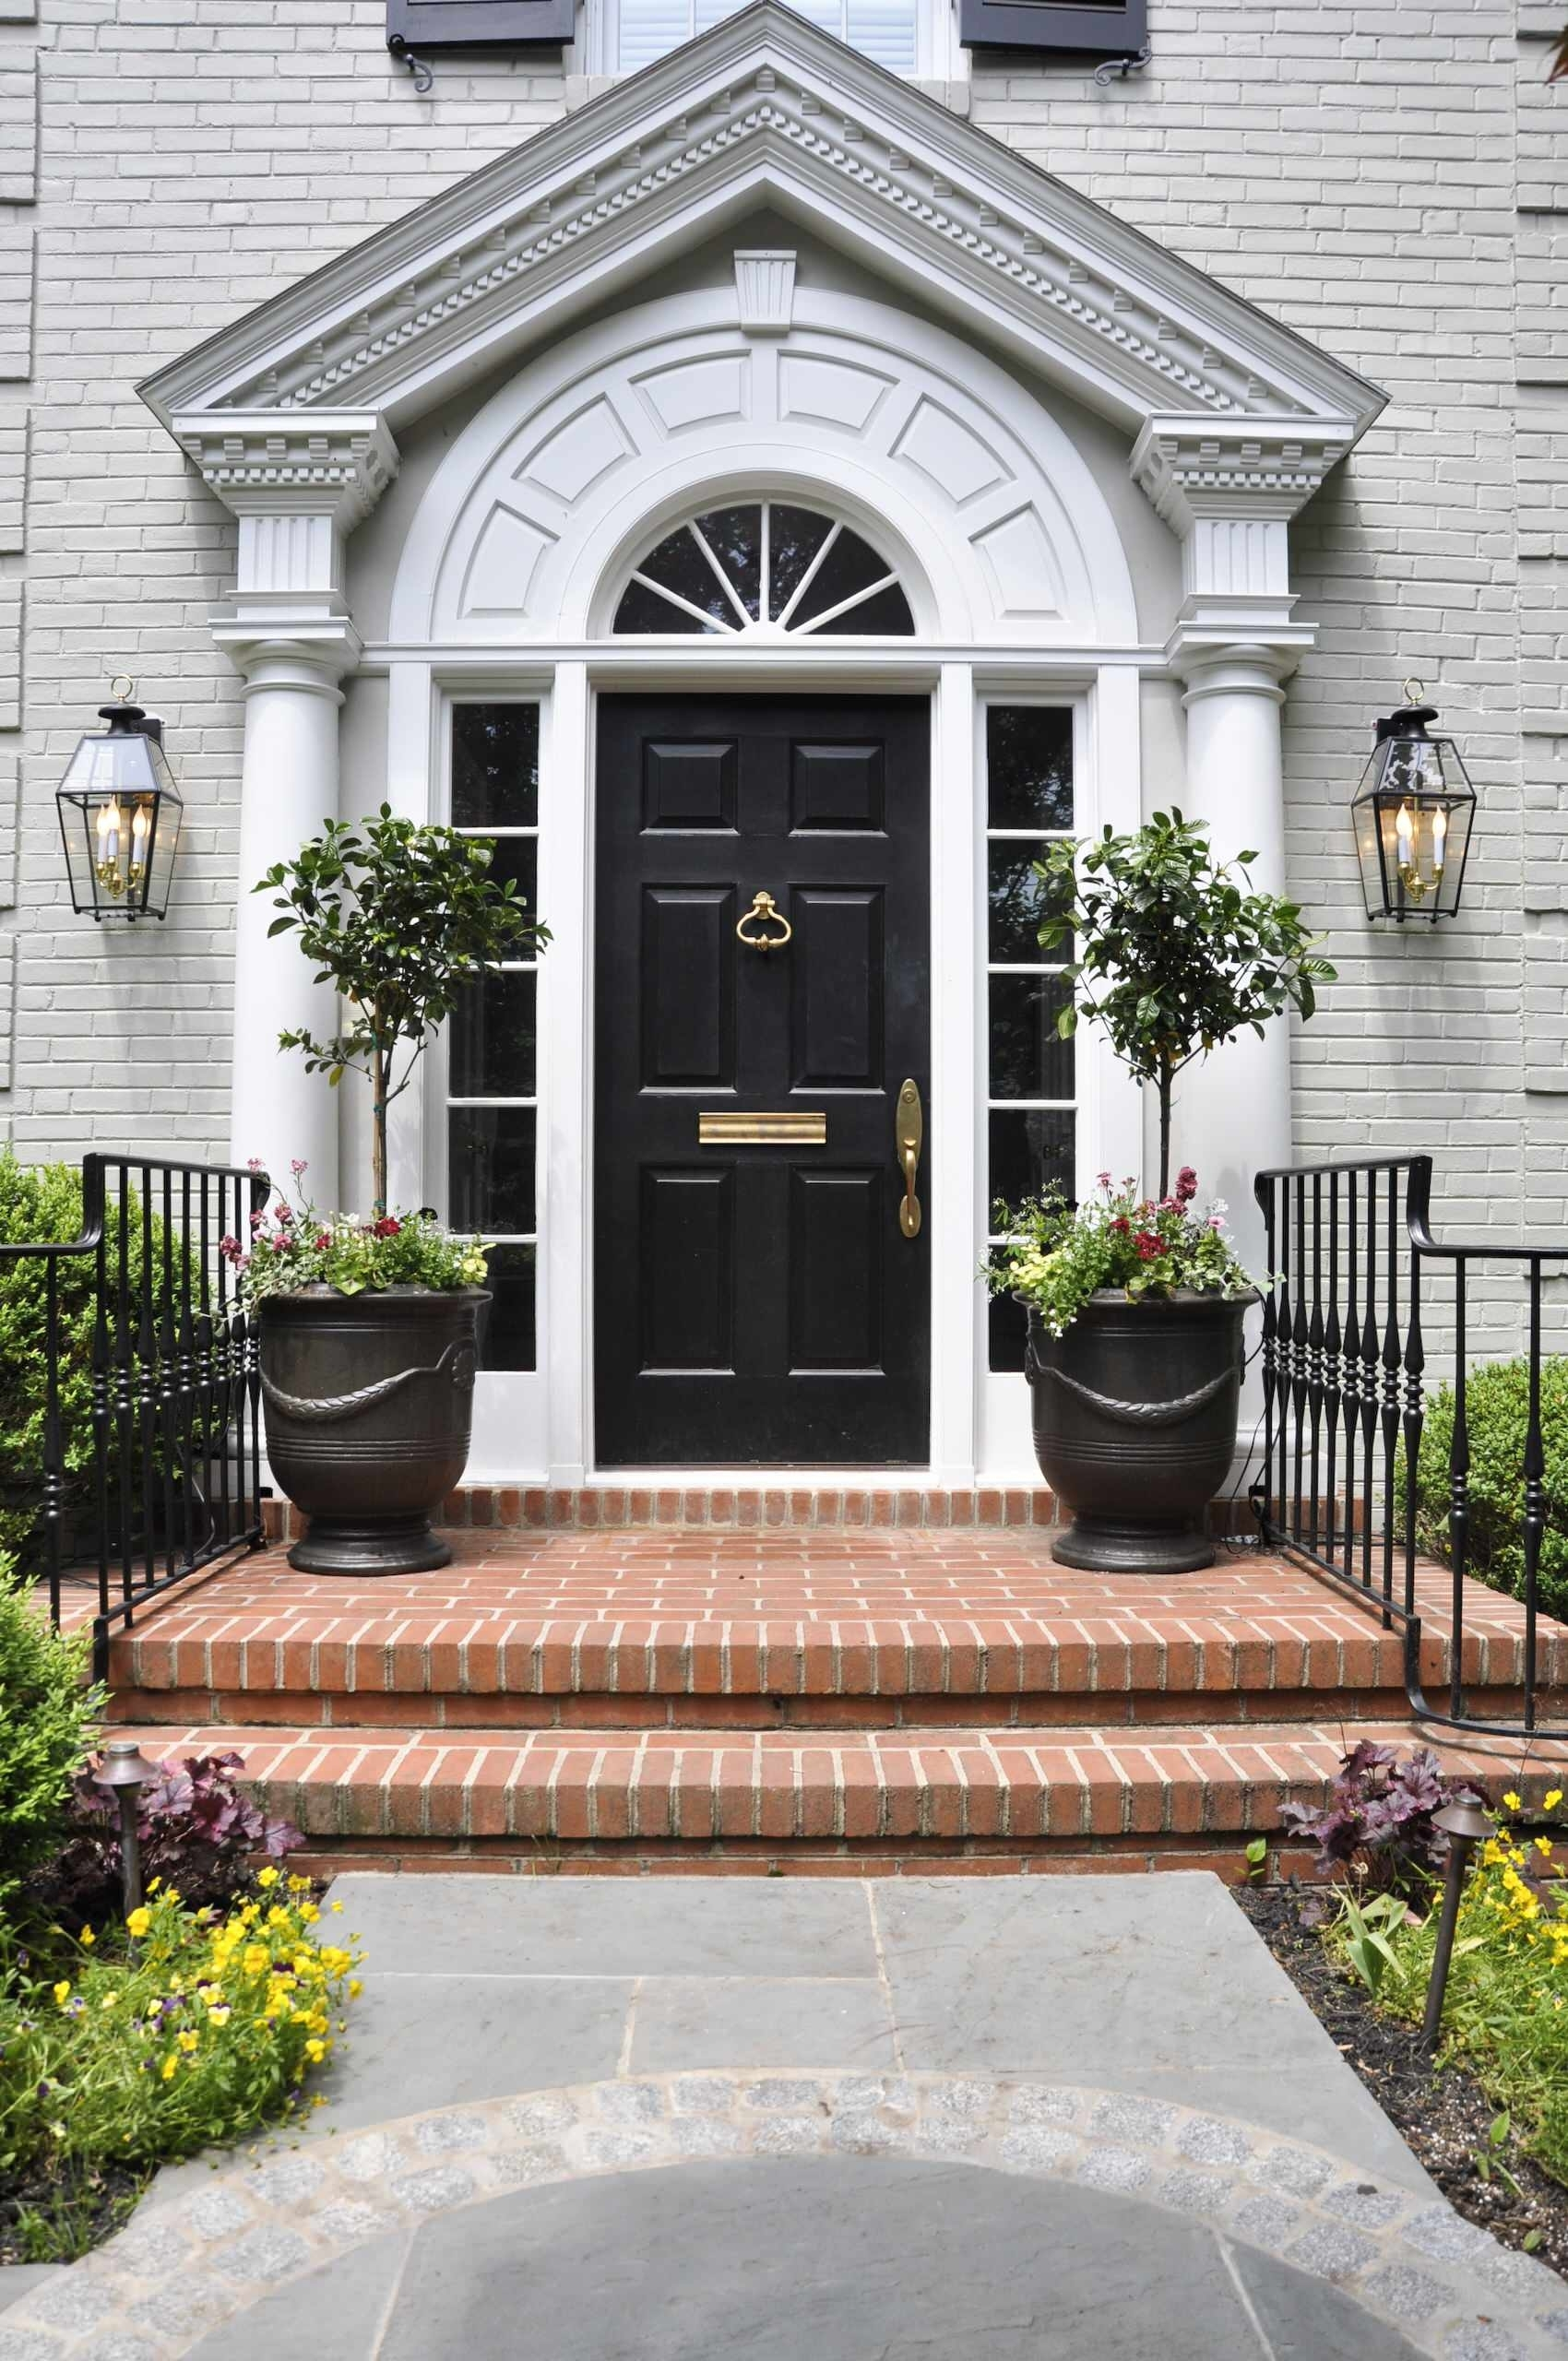 Exterior Design: Decorating With Lanterns And Entrance Pots Also with regard to Outdoor Entrance Lanterns (Image 5 of 20)